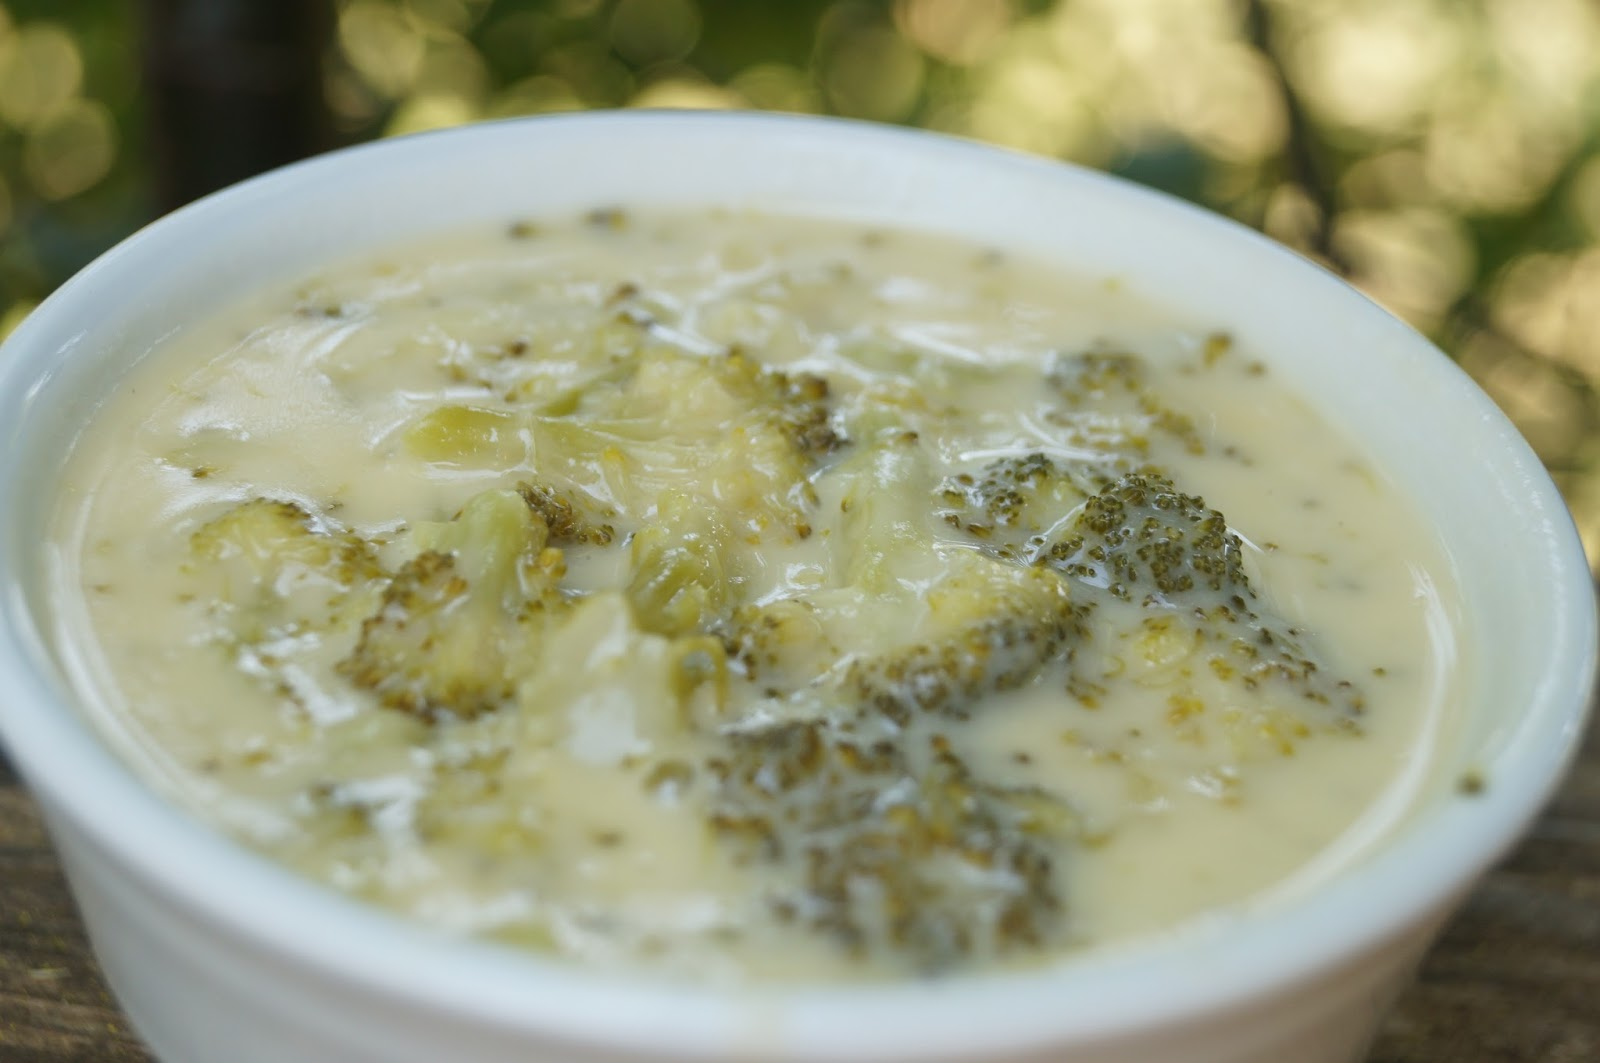 In the Kitchen with Jenny: Broccoli Cheese Soup